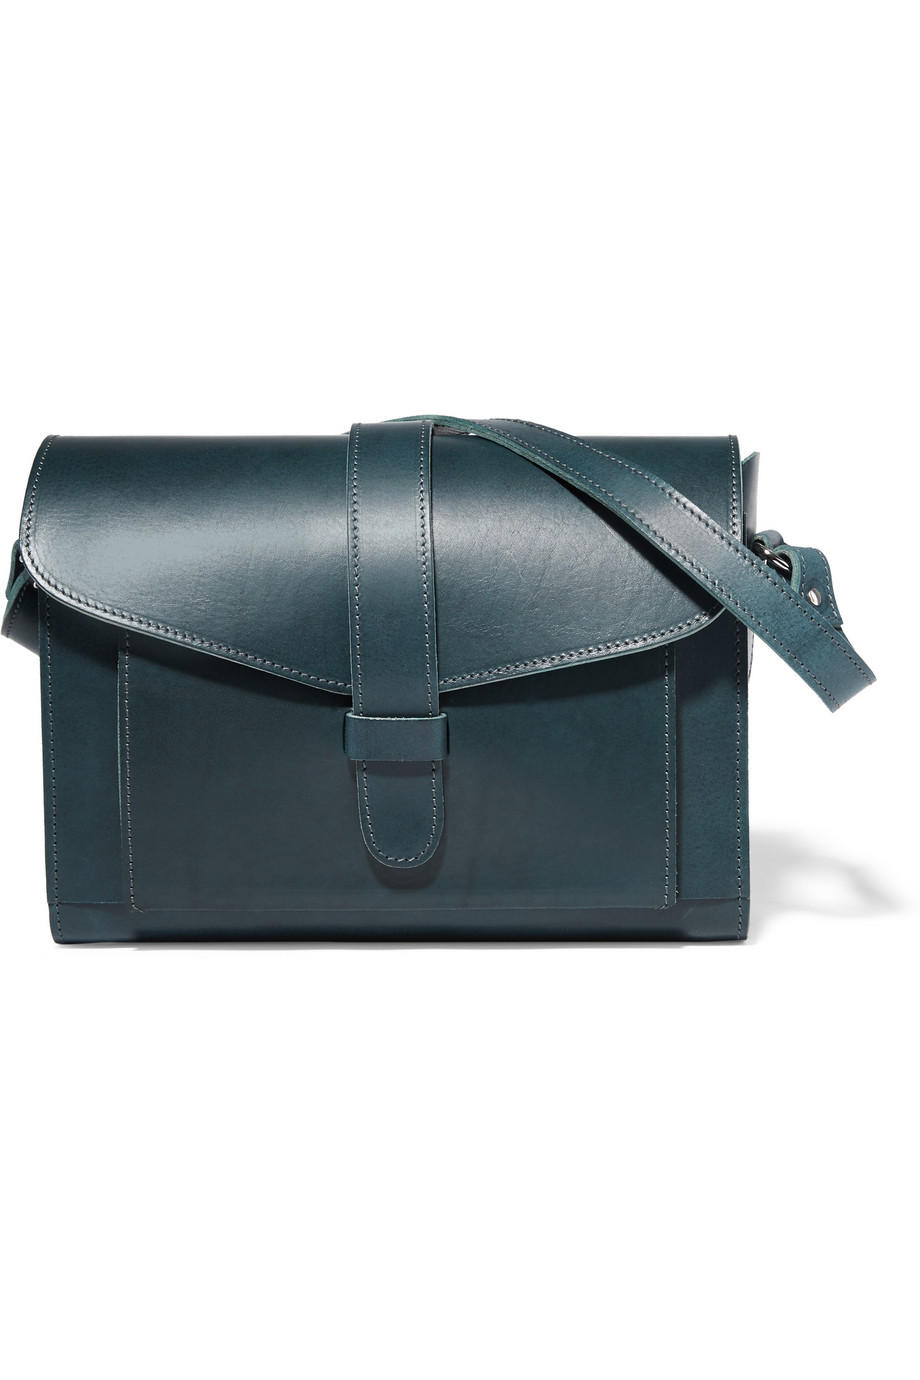 MARNI Leather shoulder bag On Sale @ THE OUTNET